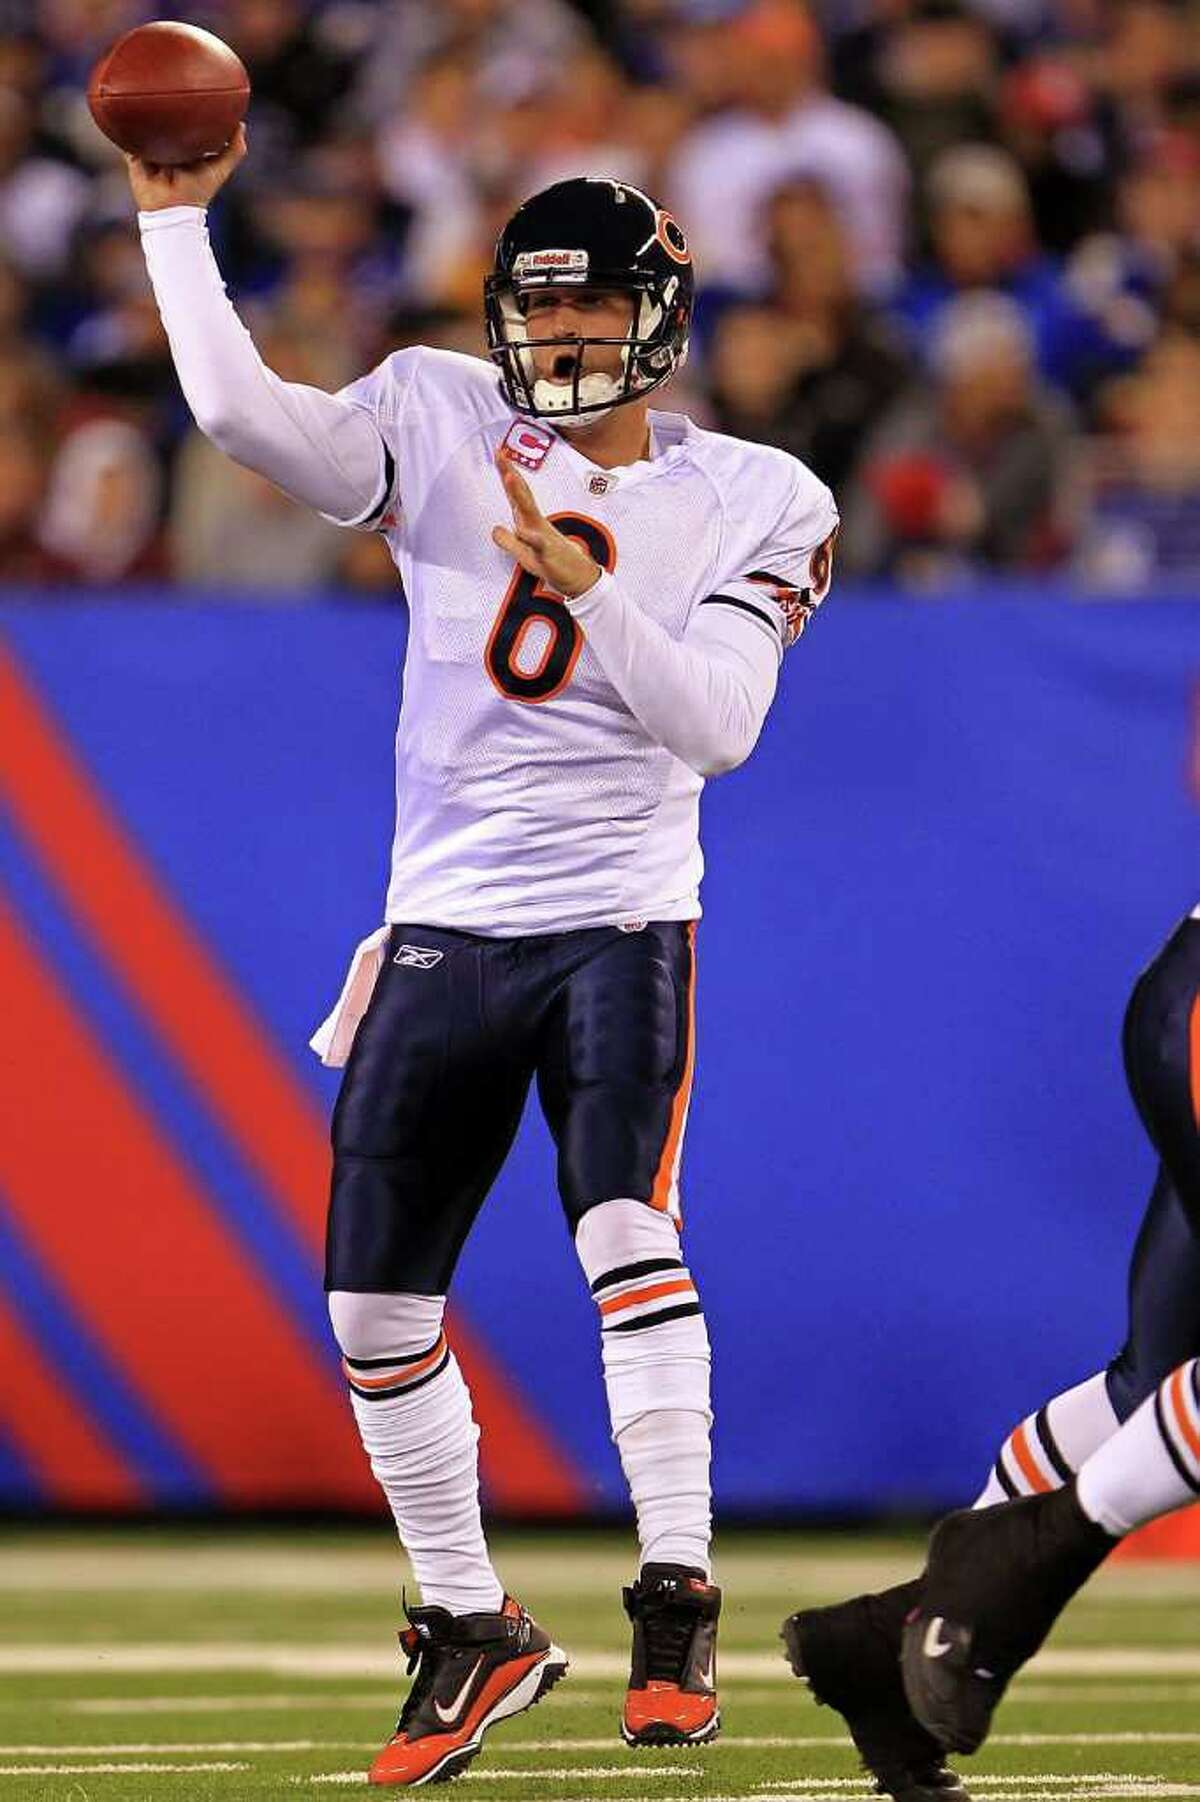 EAST RUTHERFORD, NJ - OCTOBER 03: Jay Cutler #6 of the Chicago Bears drops back to pass against the New York Giants at New Meadowlands Stadium on October 3, 2010 in East Rutherford, New Jersey. (Photo by Chris McGrath/Getty Images) *** Local Caption *** Jay Cutler